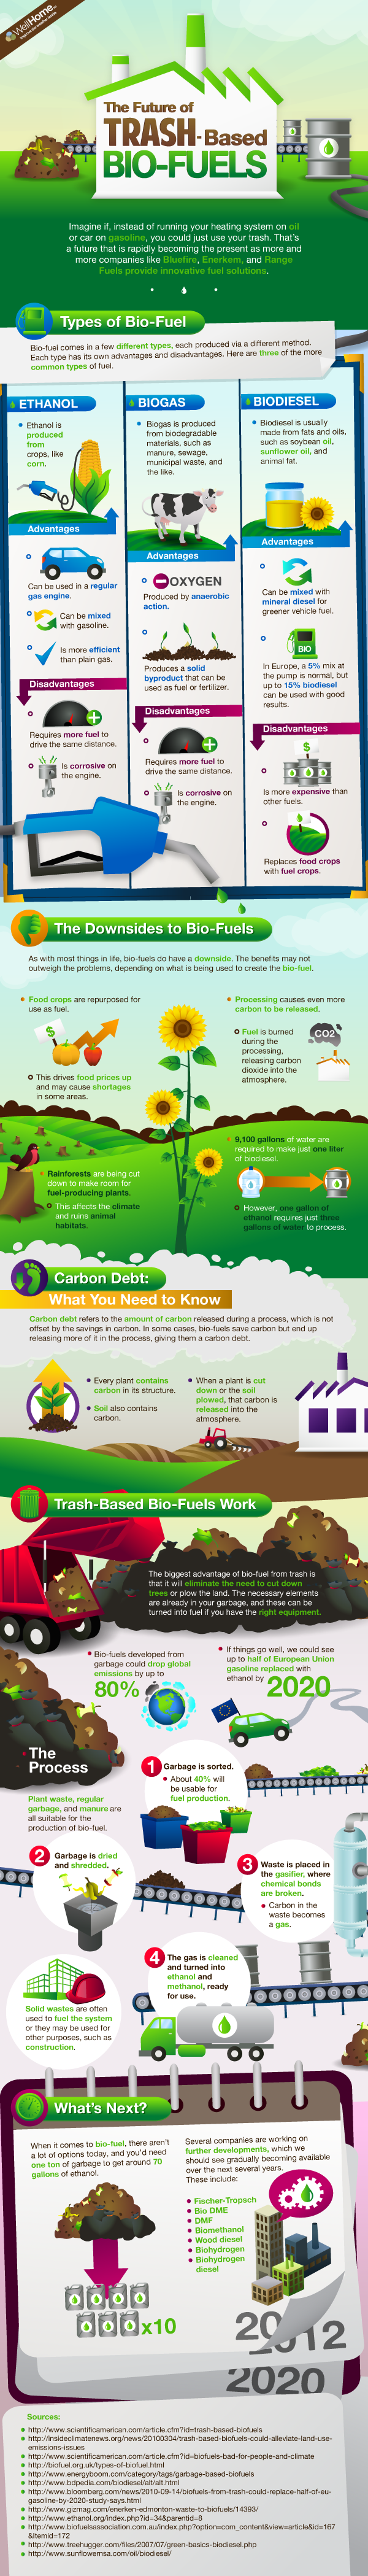 There are different types of trash-based bio-fuels, to learn about them and their pros and cons take a look below